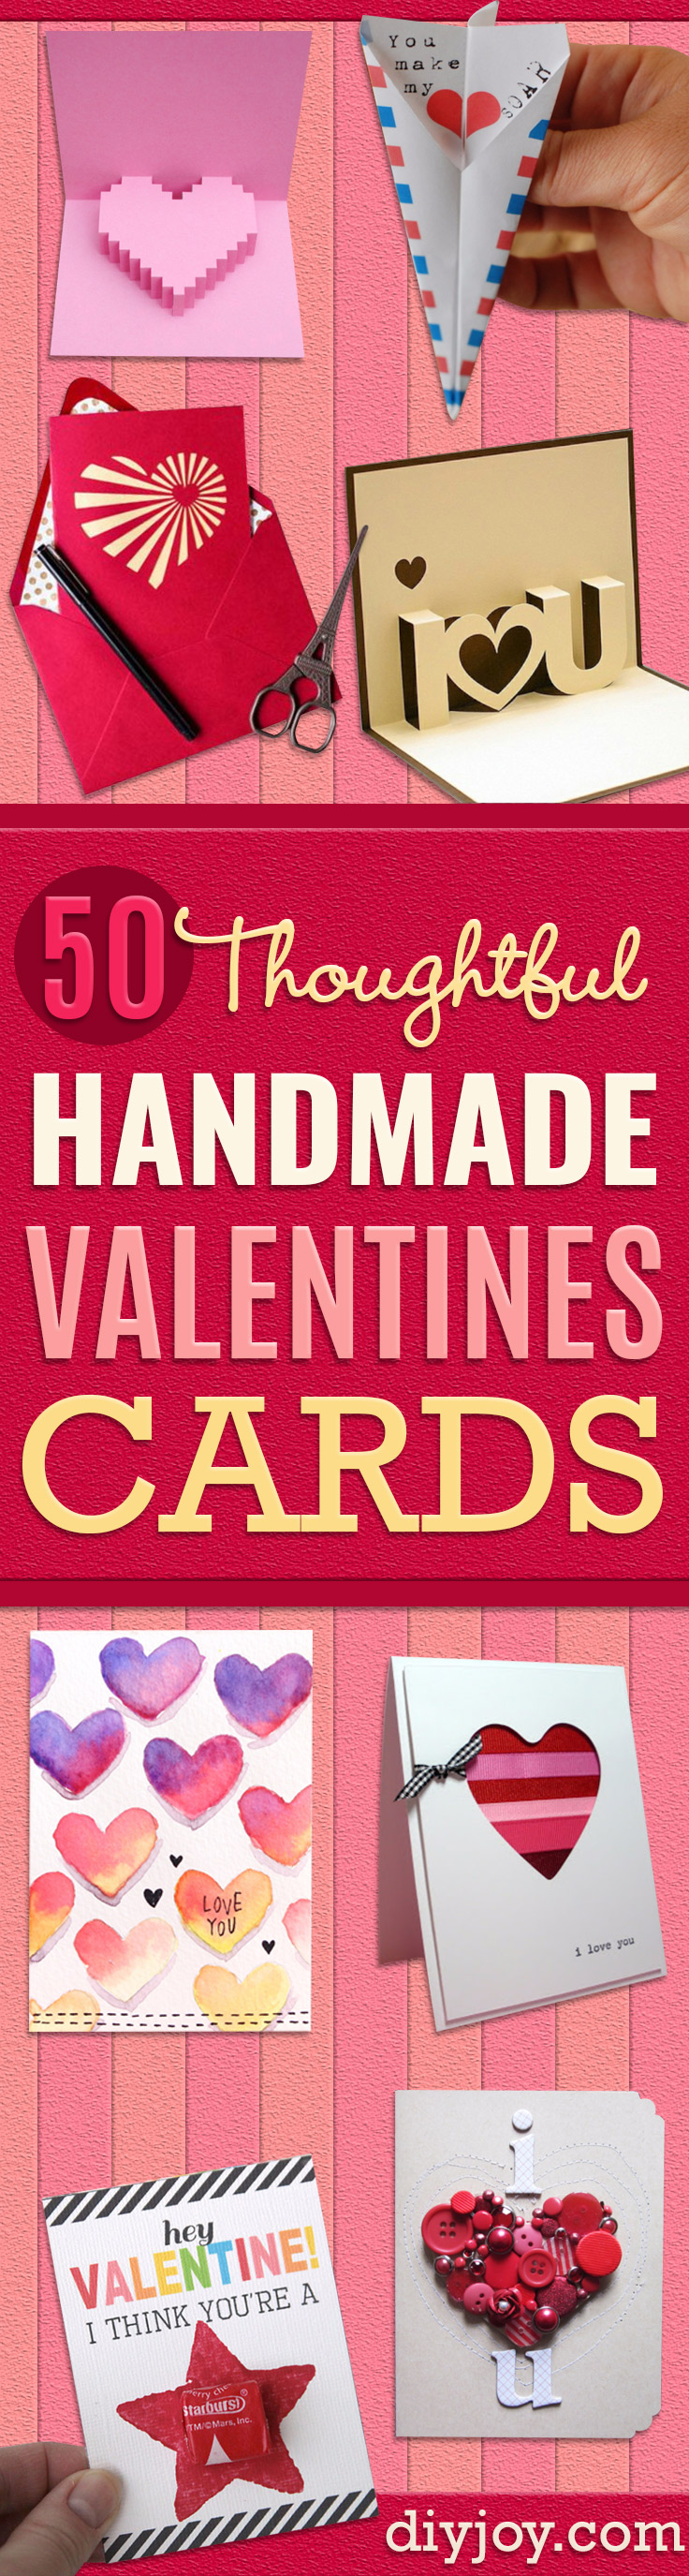 DIY Valentines Day Cards - Easy Handmade Cards for Him and Her, Kids, Freinds and Teens - Funny, Romantic, Printable Ideas for Making A Unique Homemade Valentine Card - Step by Step Tutorials and Instructions for Making Cute Valentine's Day Gifts #valentines